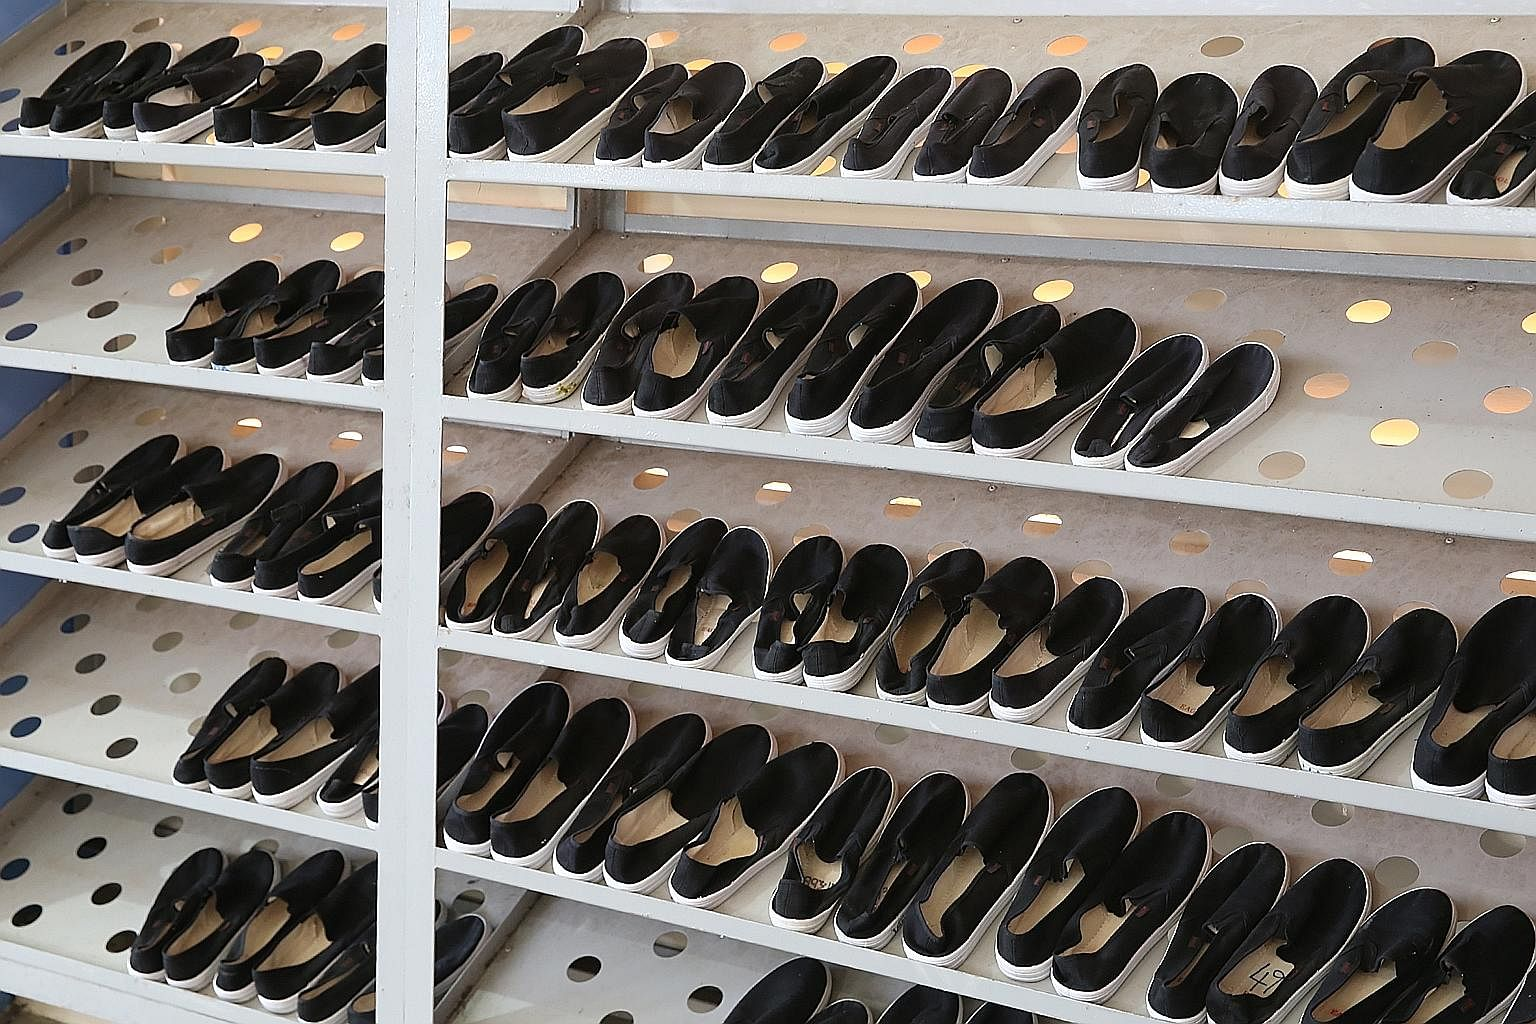 In their spare time, inmates get to read newspapers to keep up with current affairs. They are supplied with shoes, lined up on shelves in the yard, for their ball games. All DRC inmates are detained for drug consumption. An offender can be sent to th